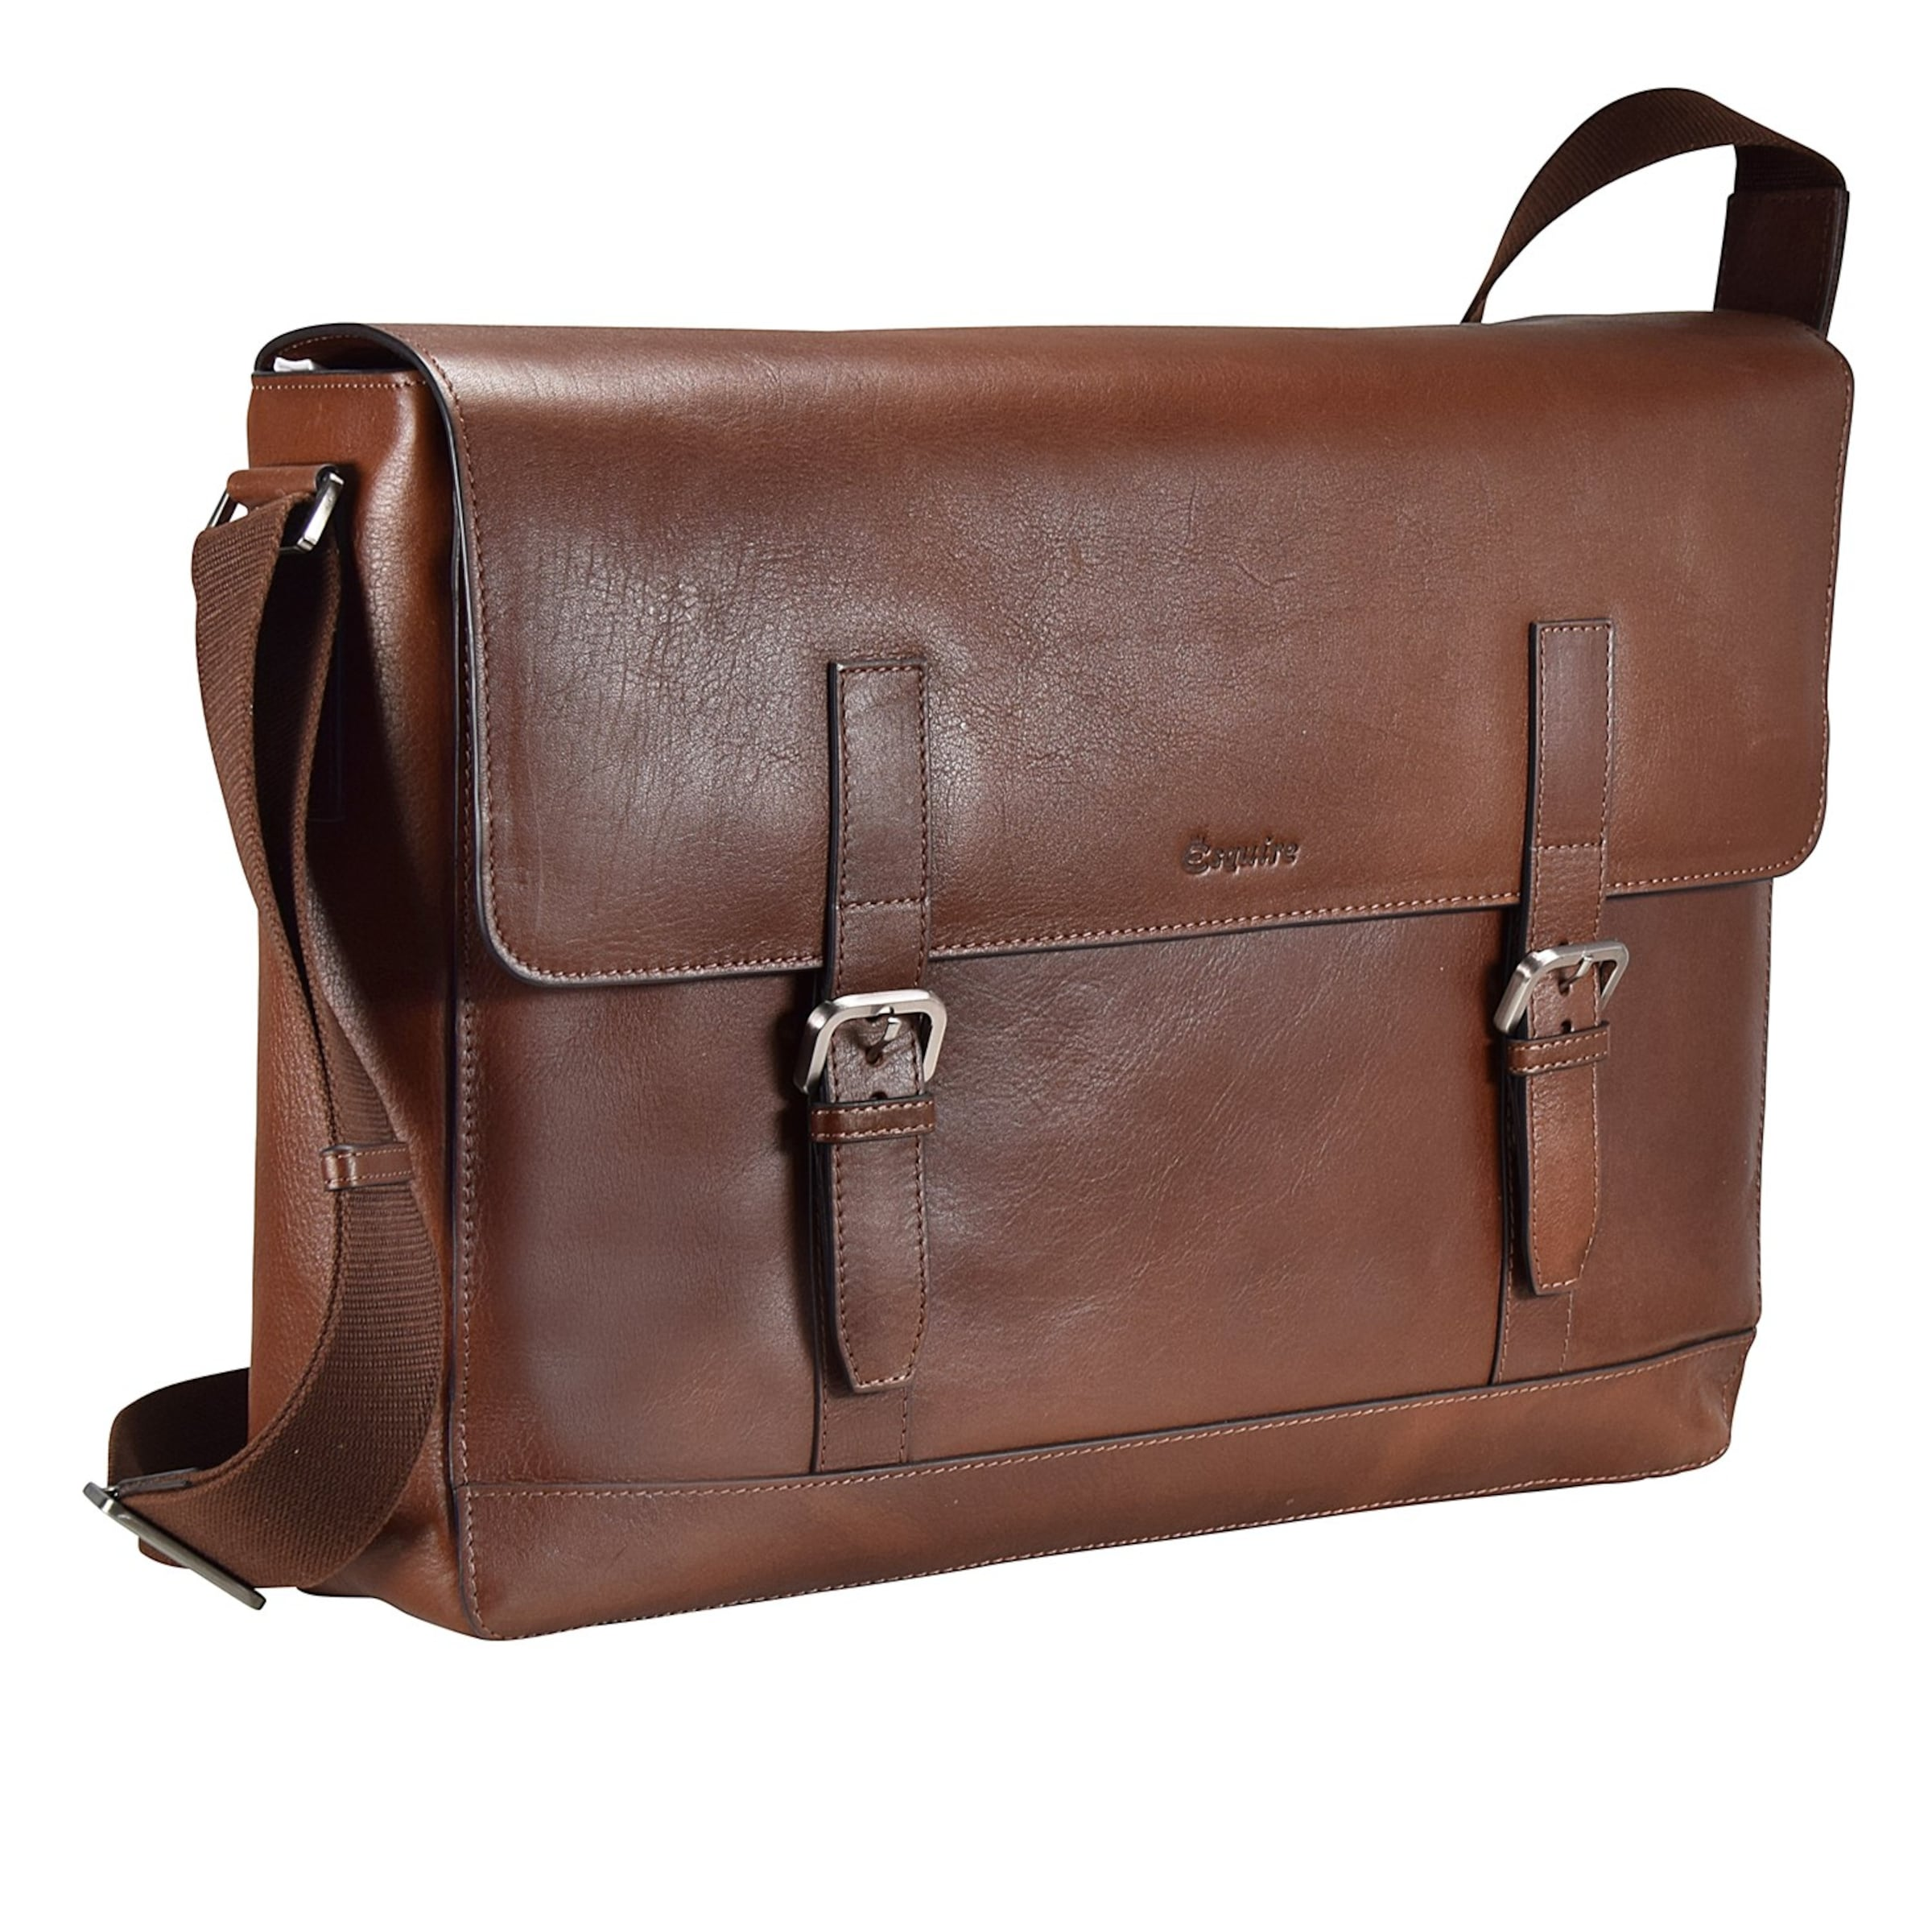 En Marron Esquire Messenger En Marron Esquire Messenger 'vienna' 'vienna' tQsrdh